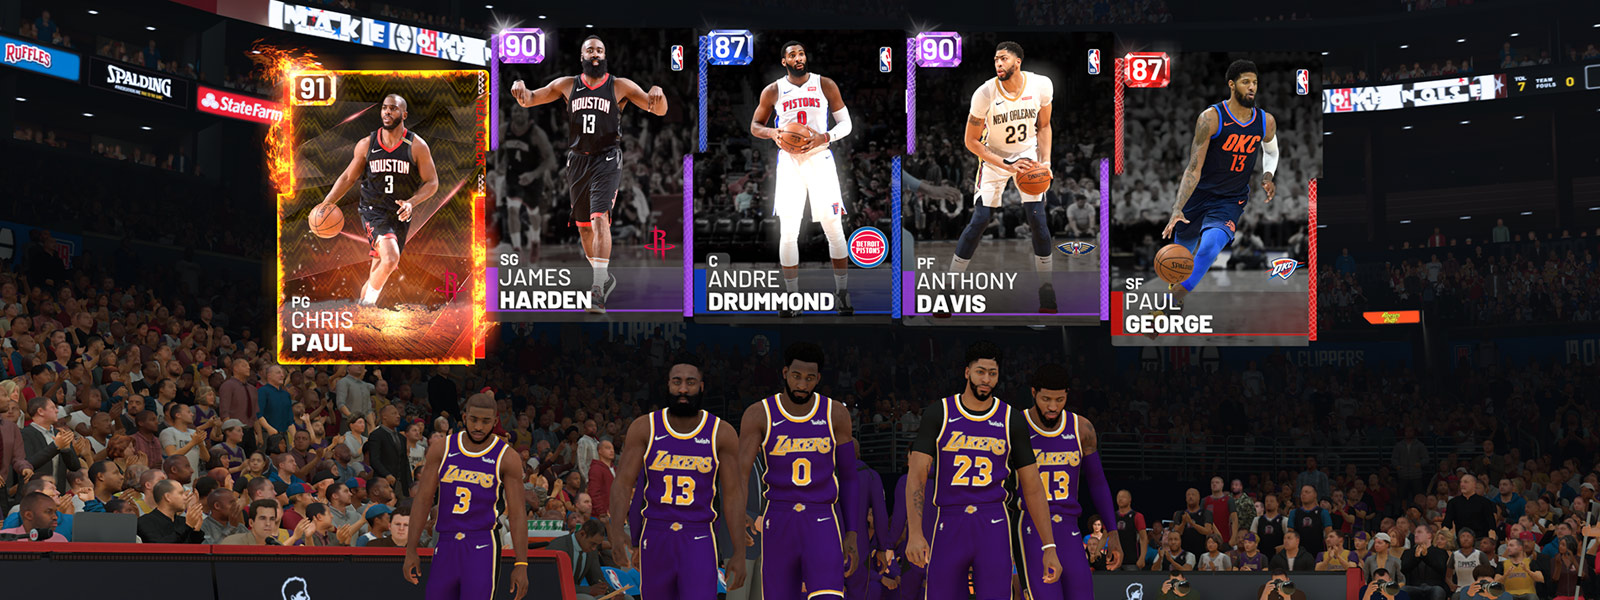 Pohled zepředu na tým Lakers v sestavě Chris Paul, James Harden, Andrew Drummond, Anthony Davis a Paul George